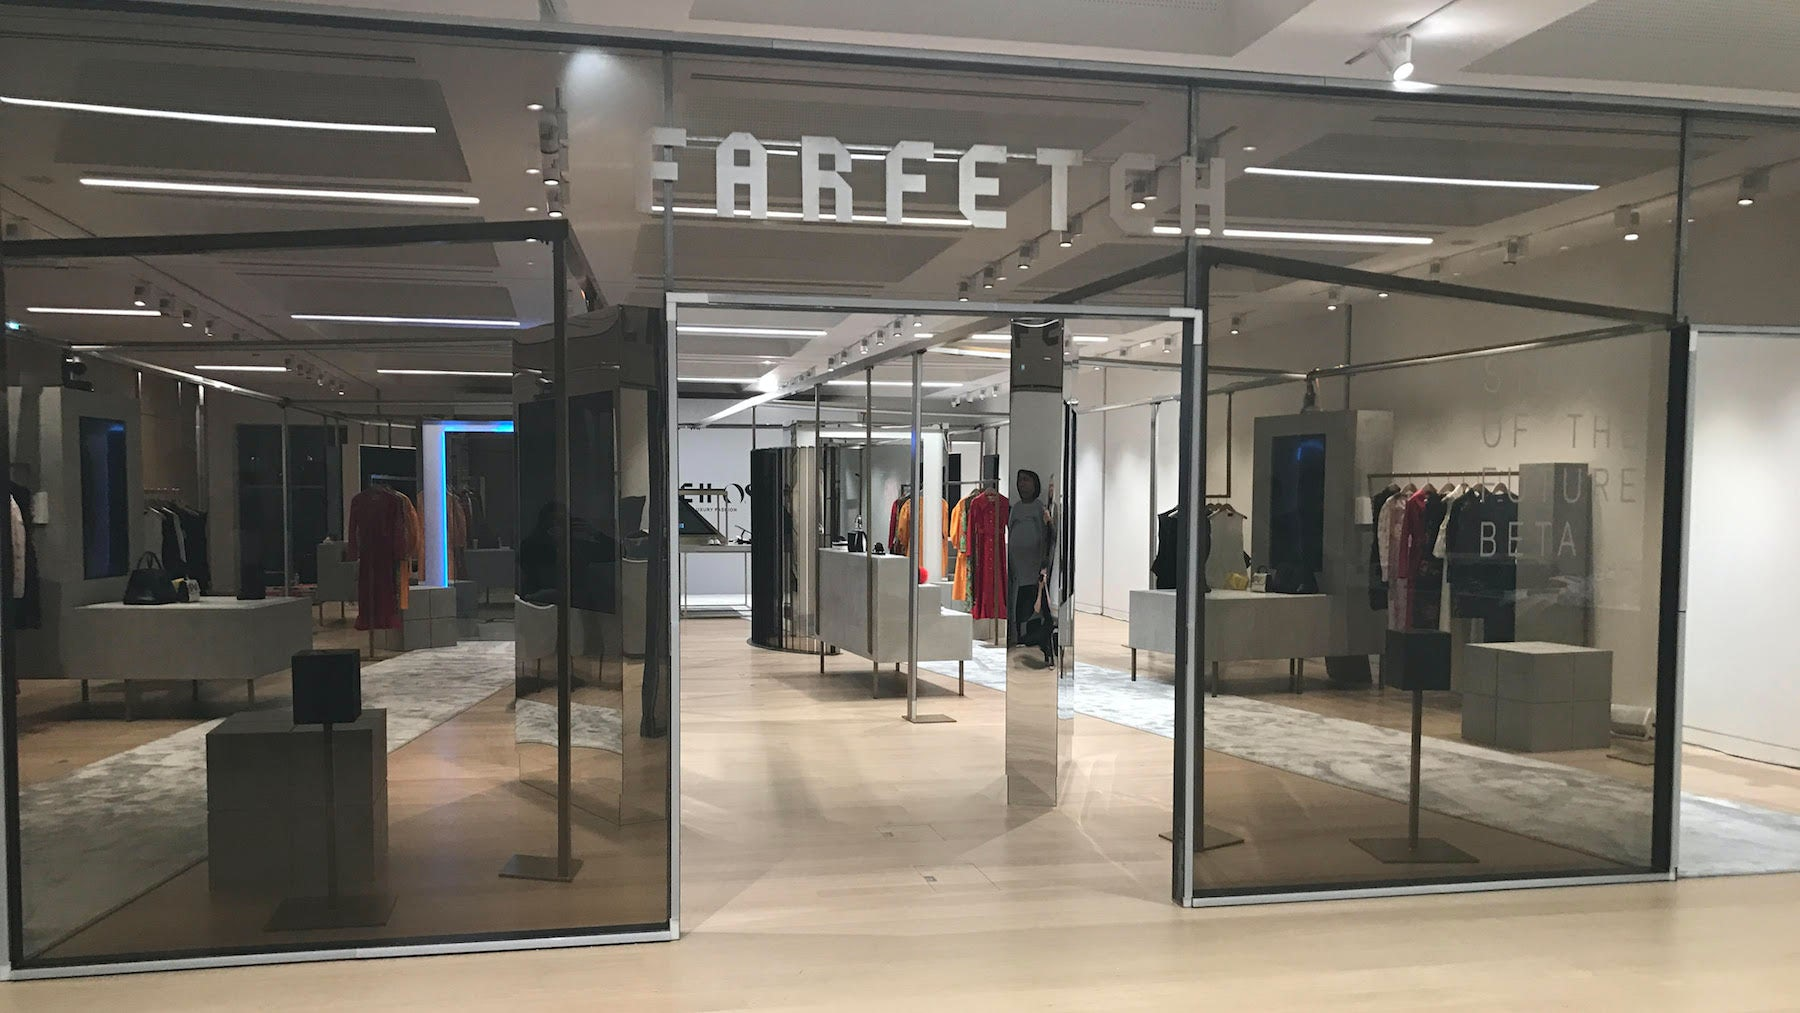 Inside Farfetch's Store of the Future demonstration | Source: Courtesy Farfetch